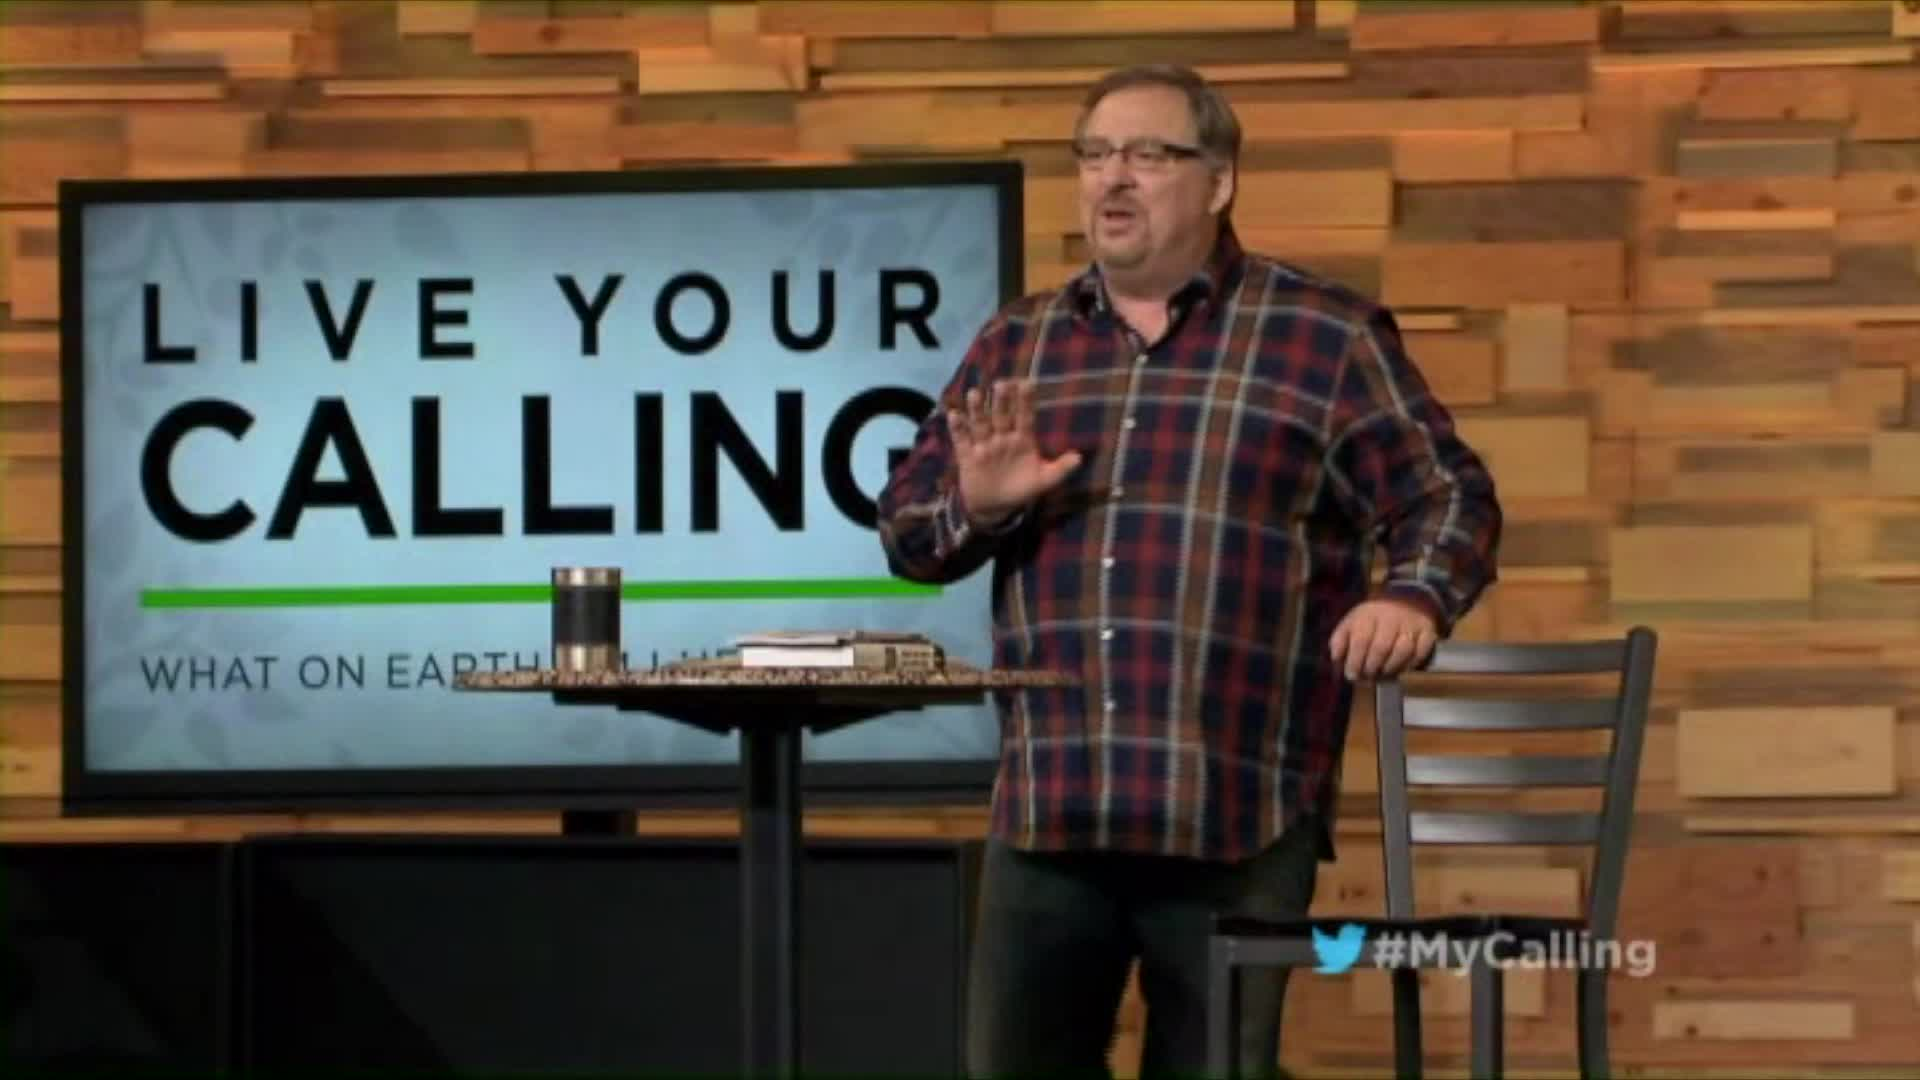 How Can I Stop Seeking Others' Approval? (Live Your Calling)